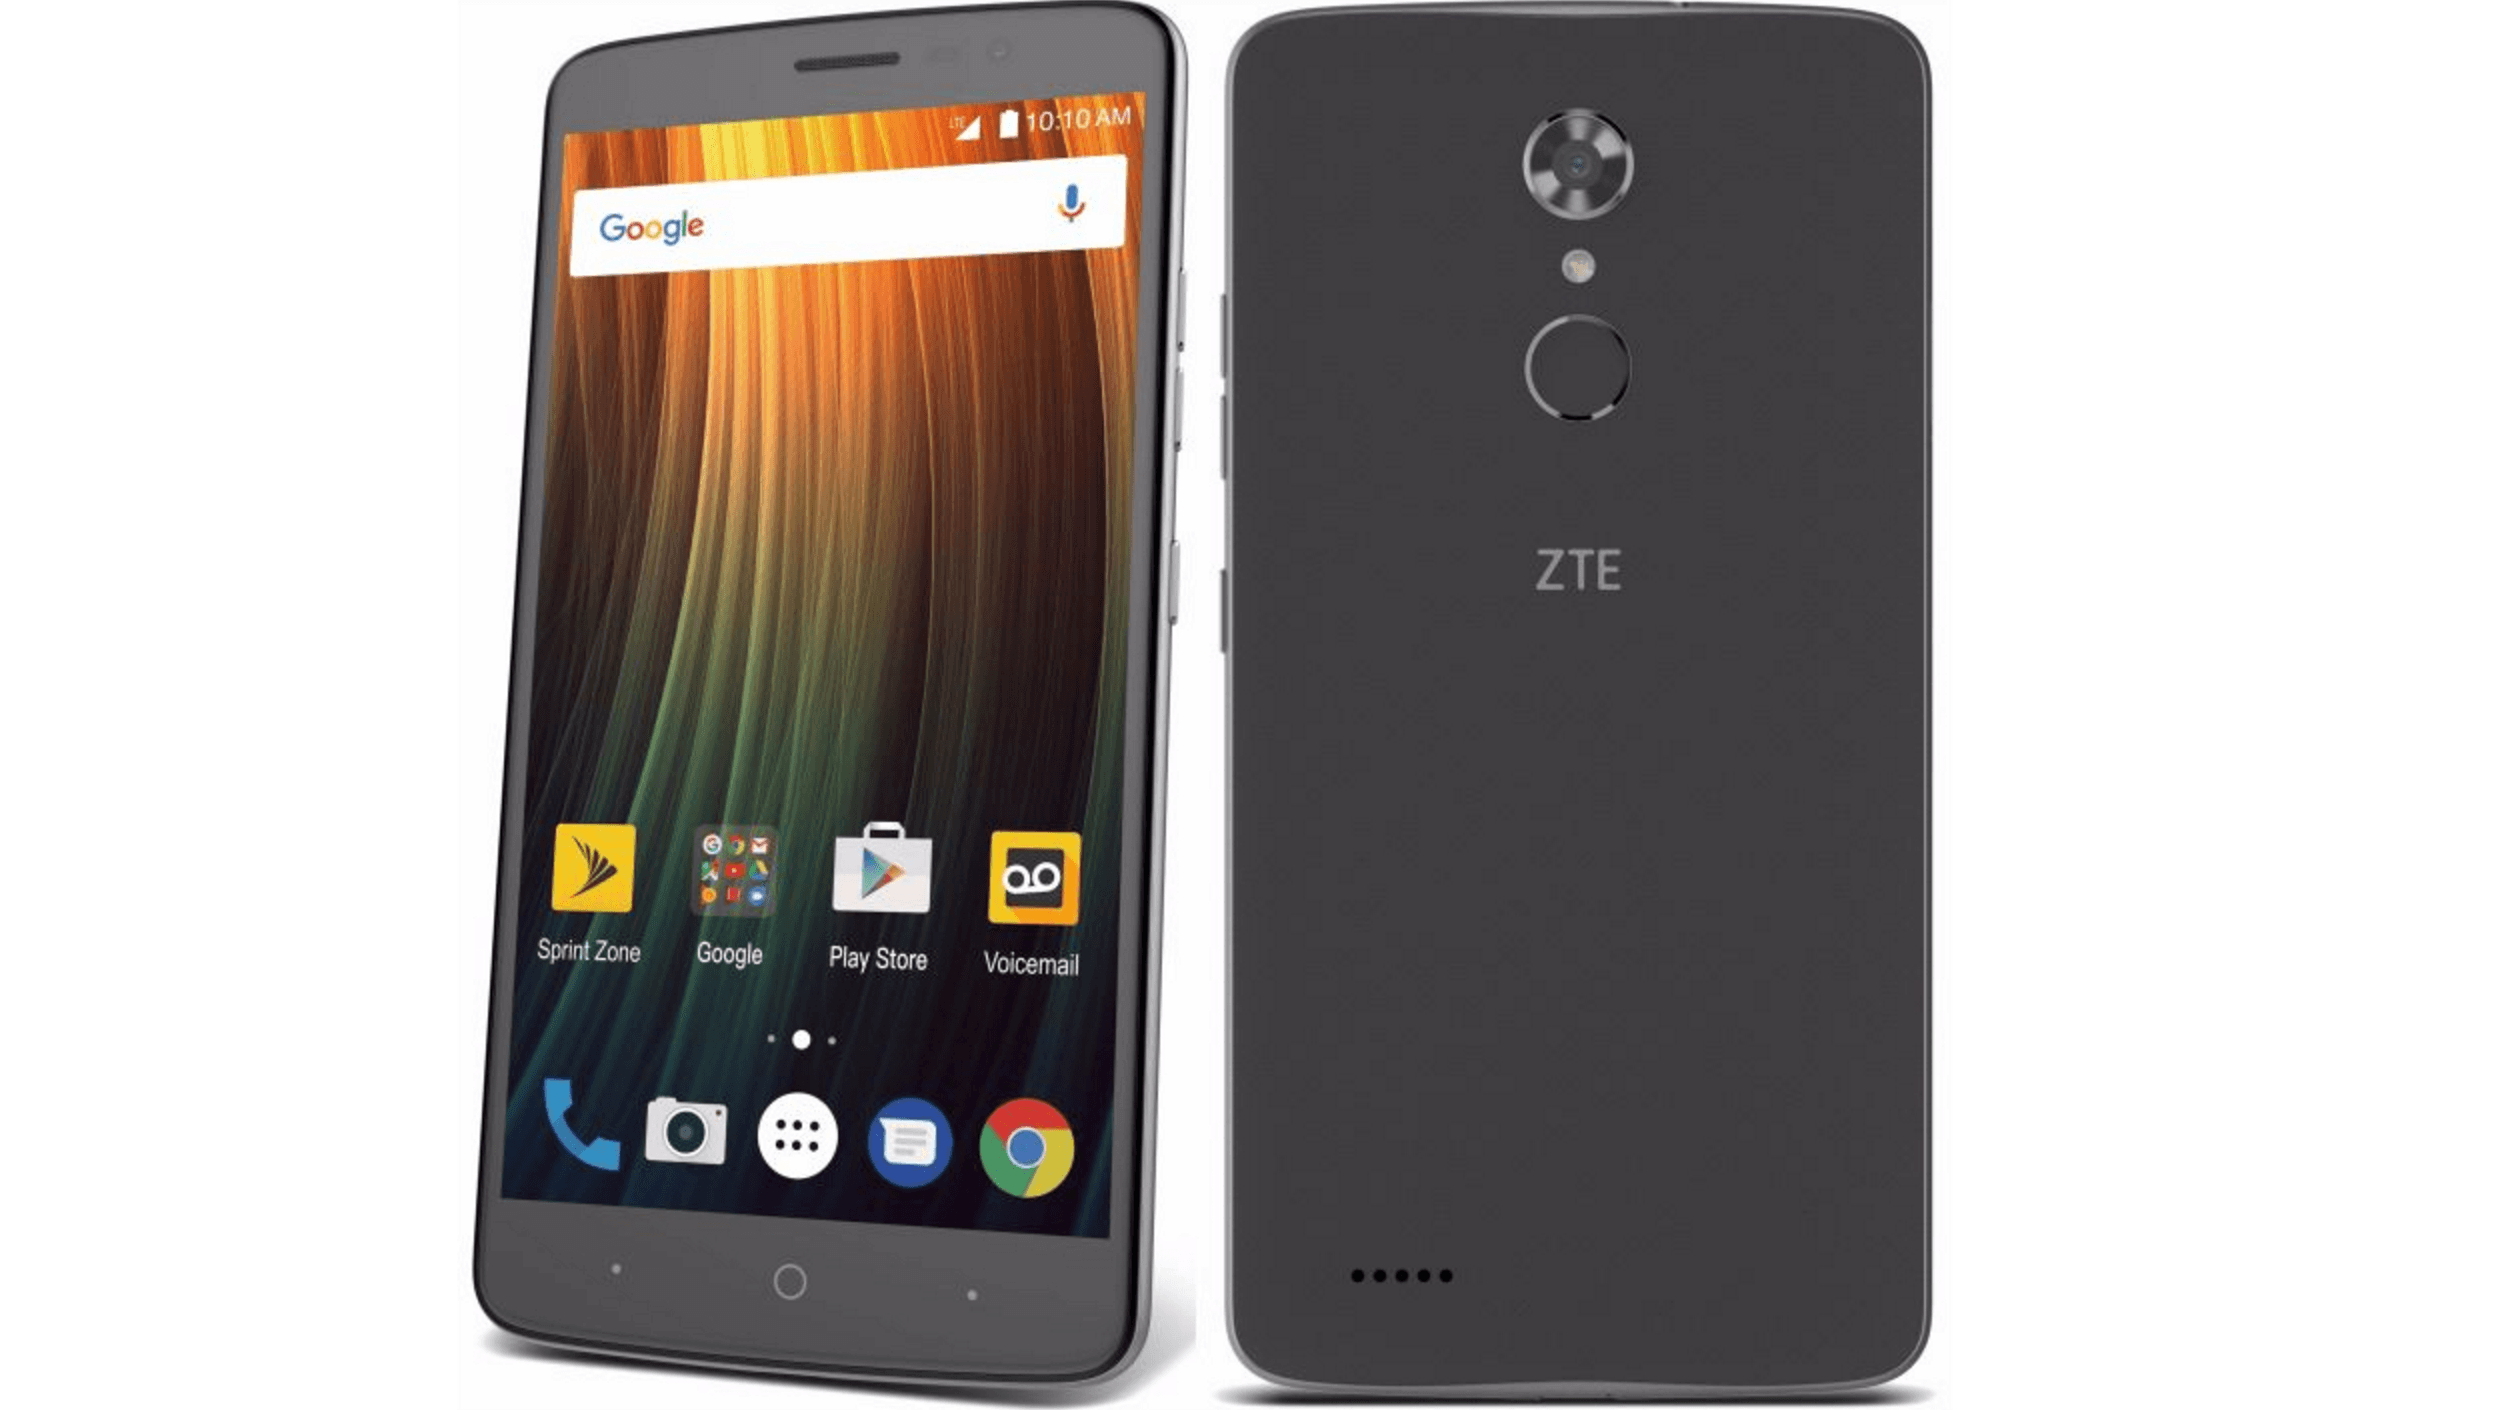 ZTE's latest budget phone and hotspot system are making